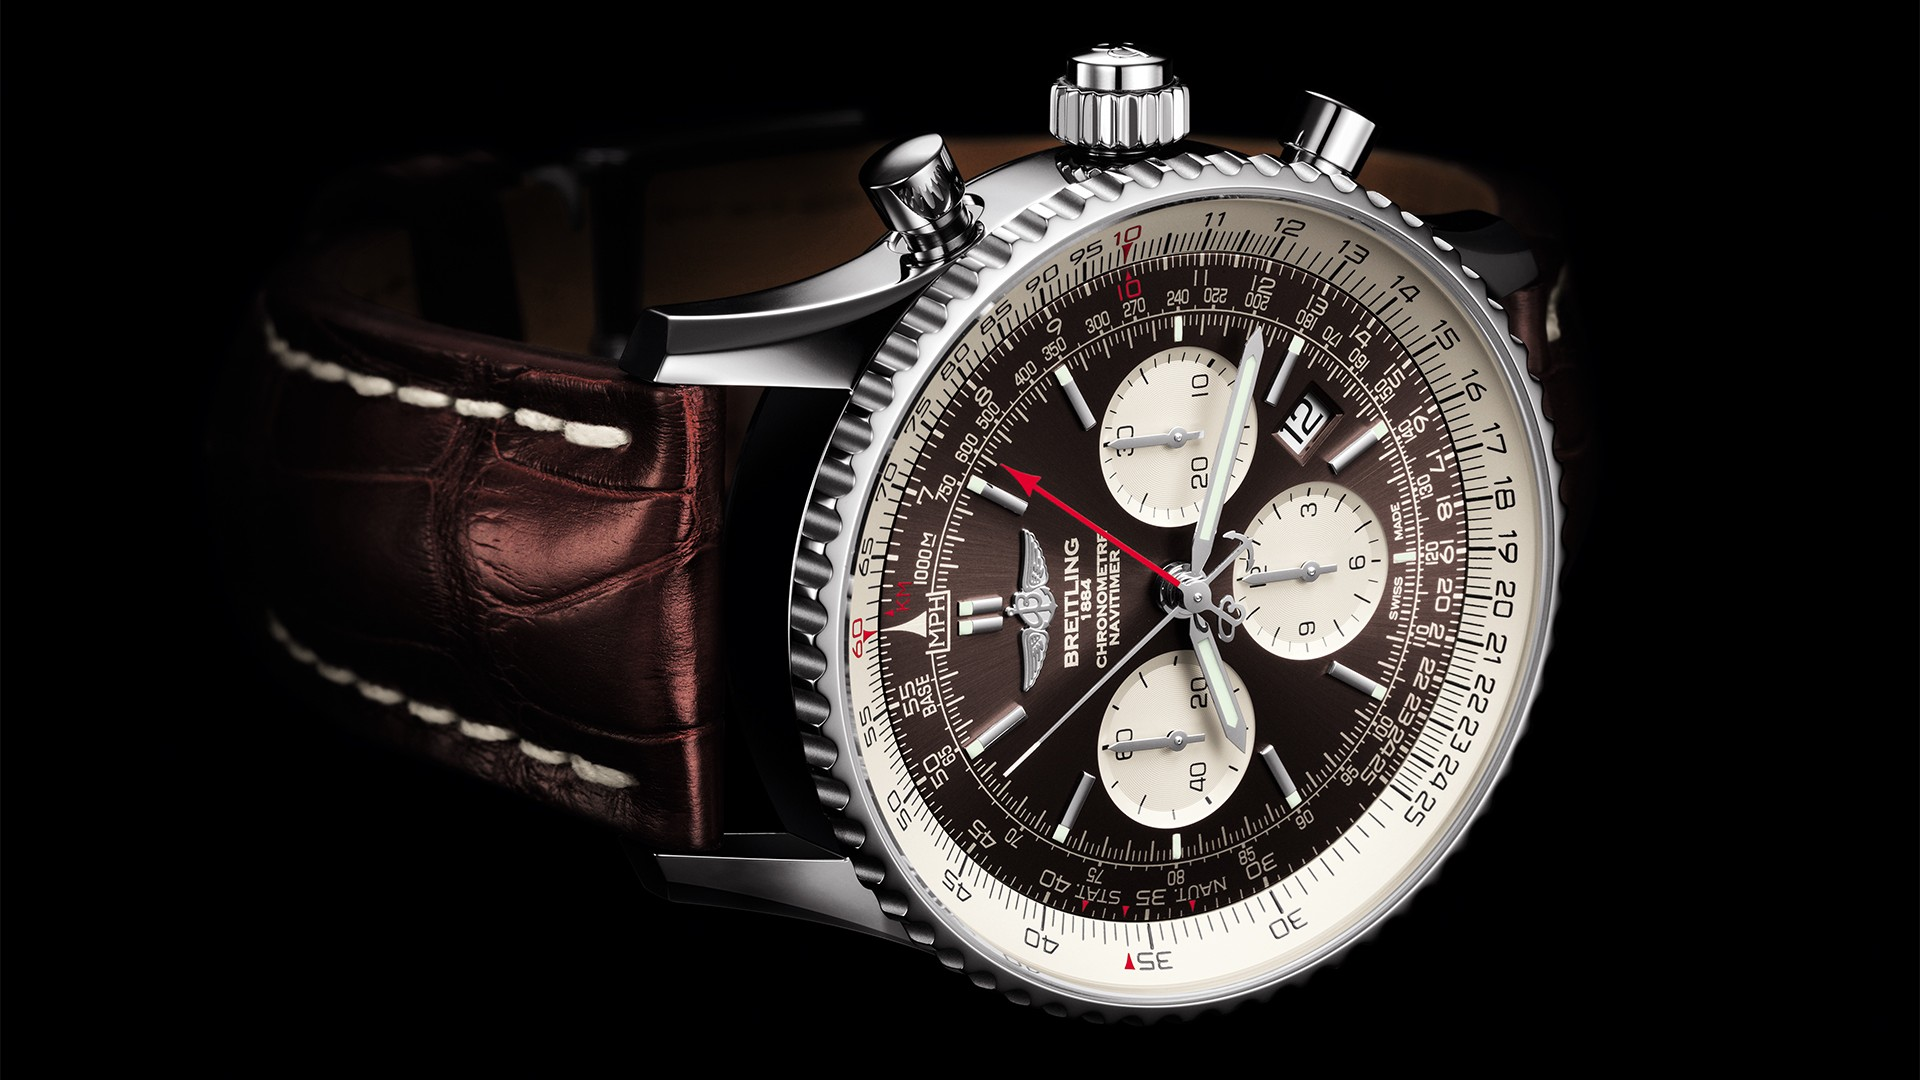 Breitling Navitimer Rattrapante split-second chronograph watch